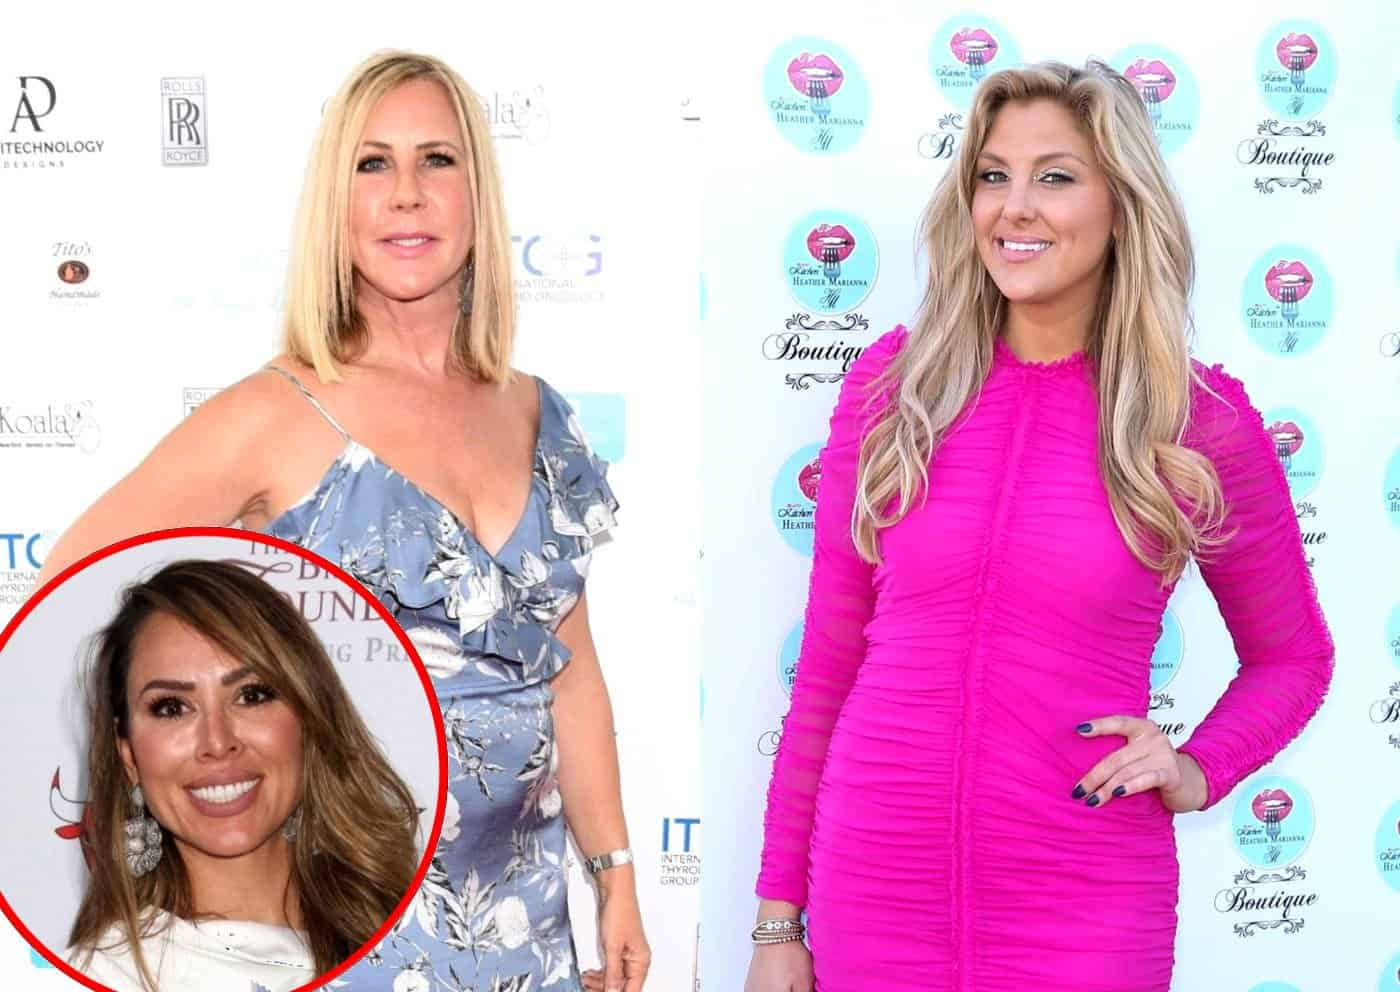 RHOC Vicki Gunvalson wants Gina Fired